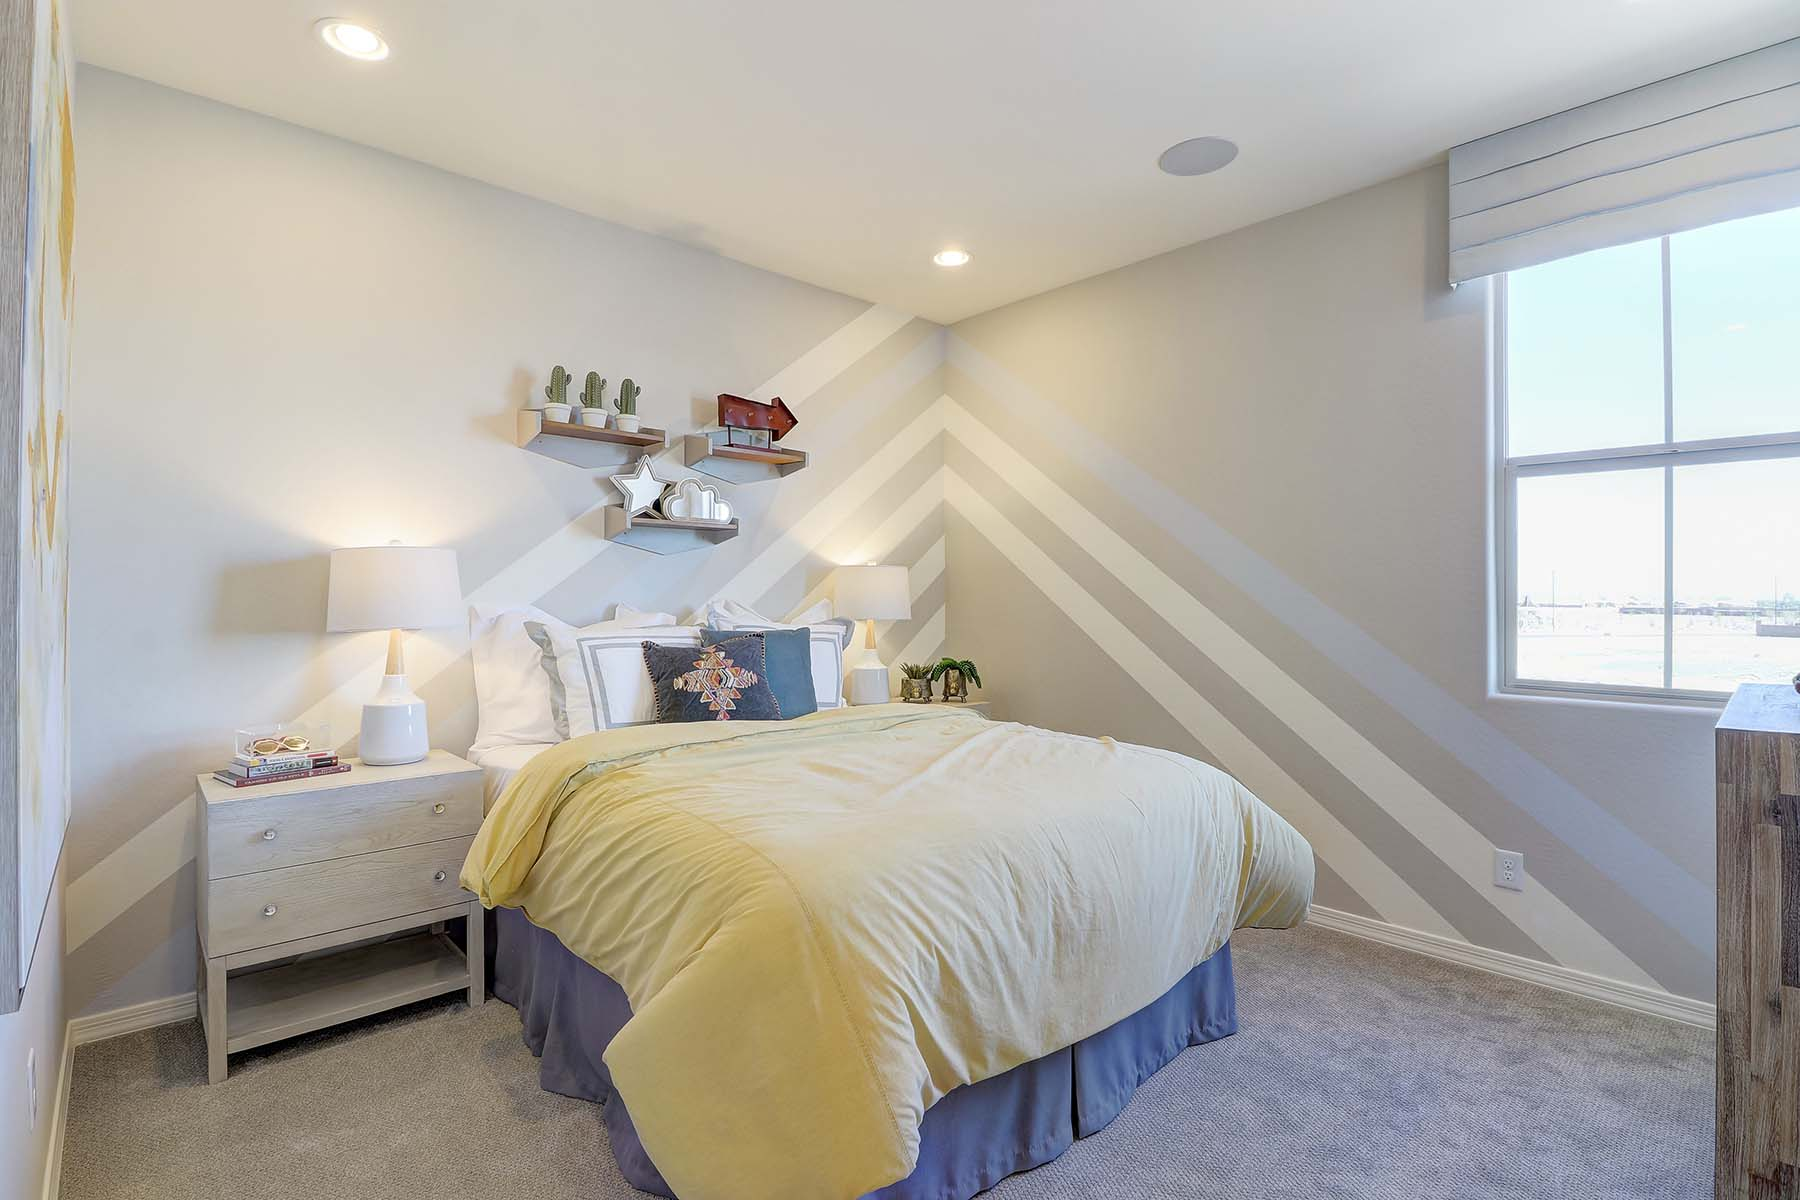 Willowleaf Plan Bedroom at Brookside at Arroyo Seco in Buckeye Arizona by Mattamy Homes